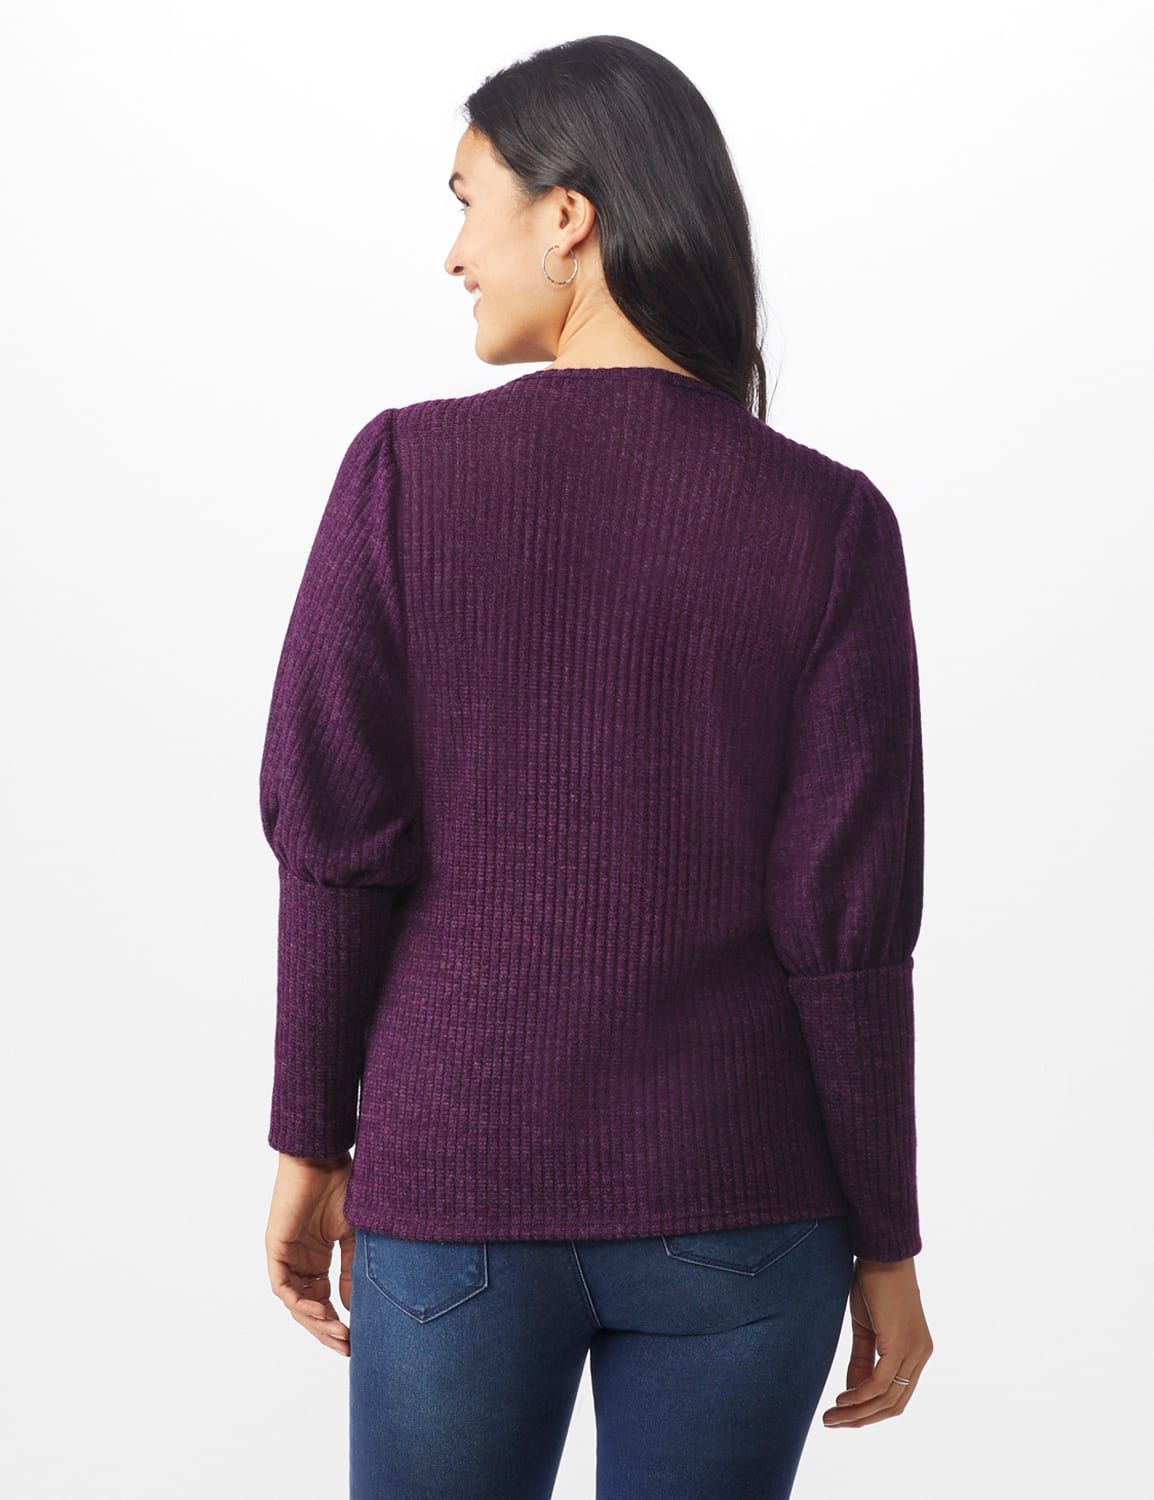 Puff Sleeve Hacci Rib Knit Top - Plum - Back